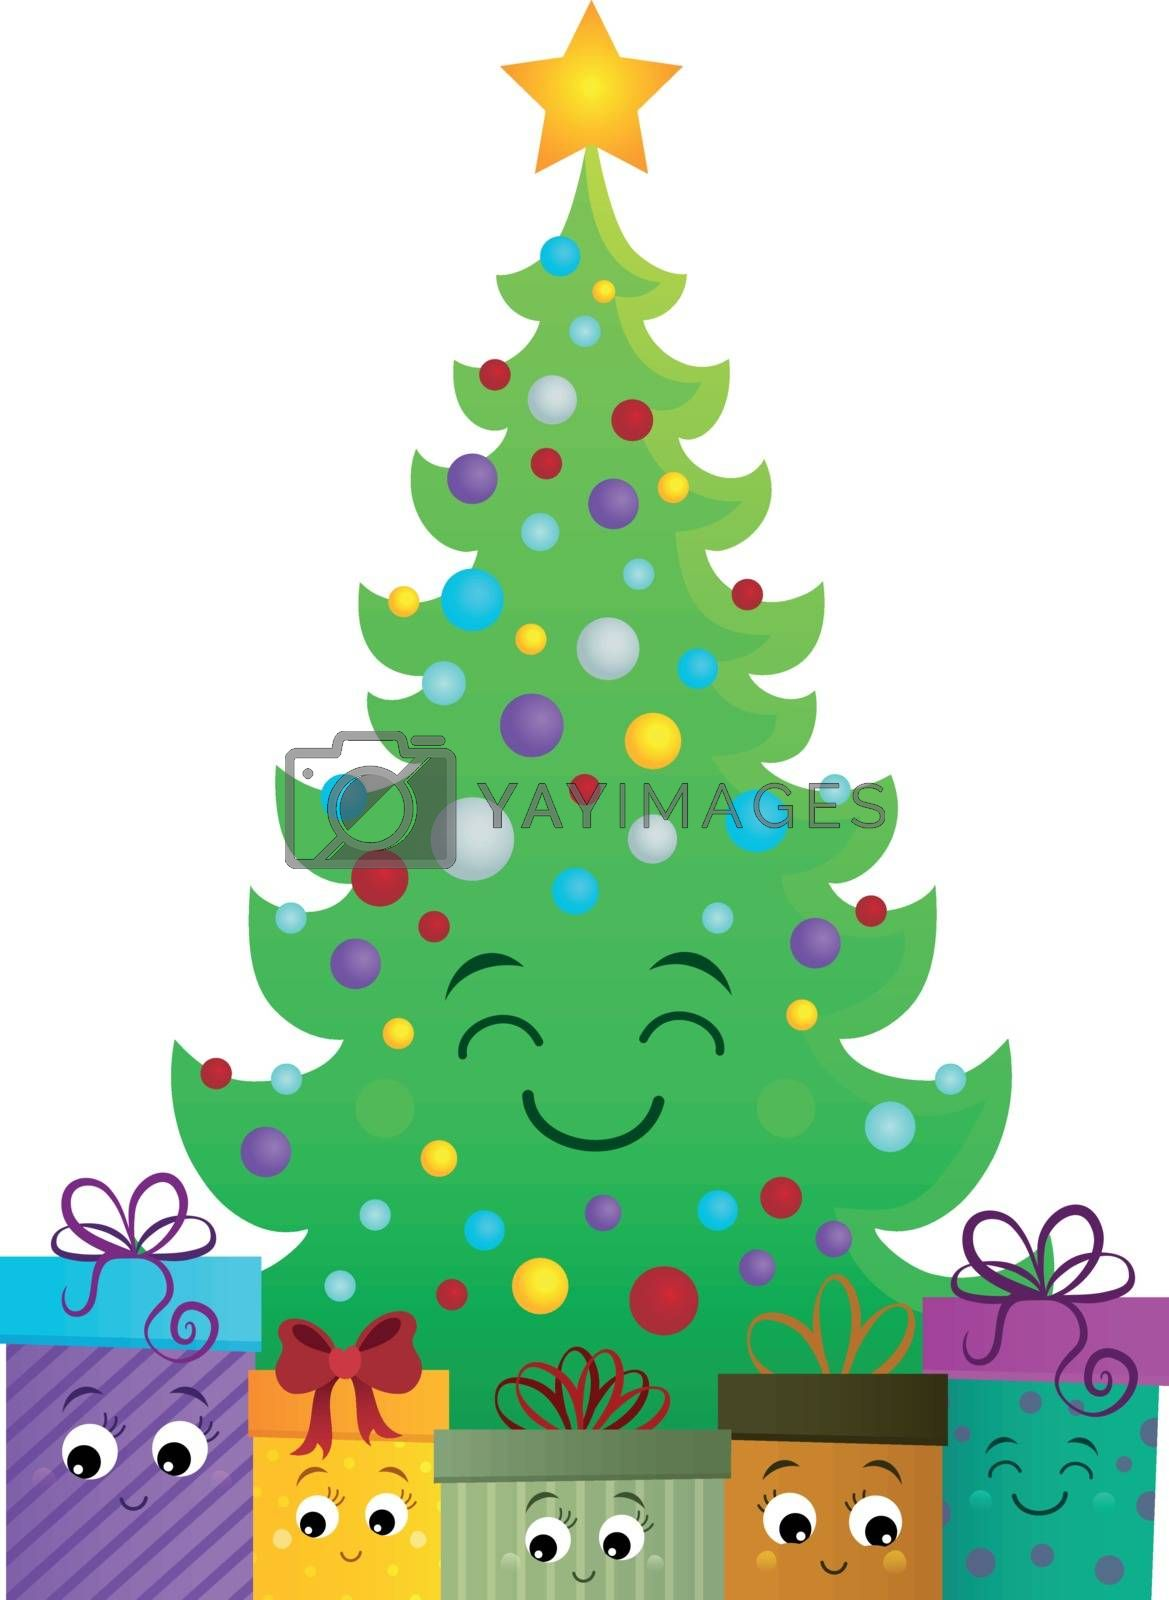 Stylized Christmas tree and gifts 1 - eps10 vector illustration.